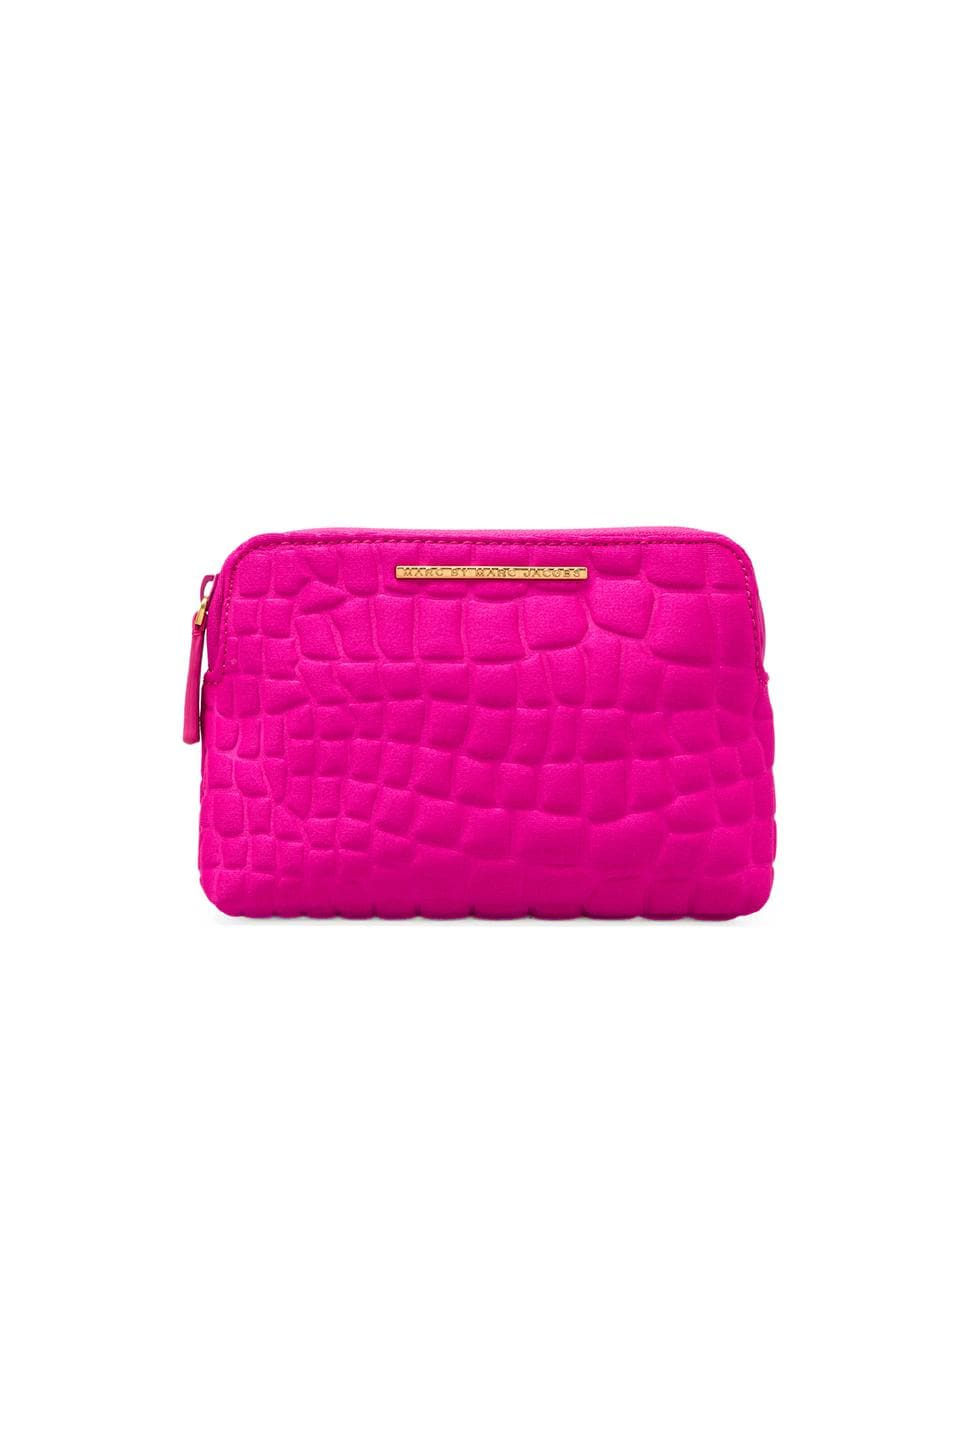 Marc by Marc Jacobs In a Bind Neoprene Mini Cosmetic Case in Pop Pink